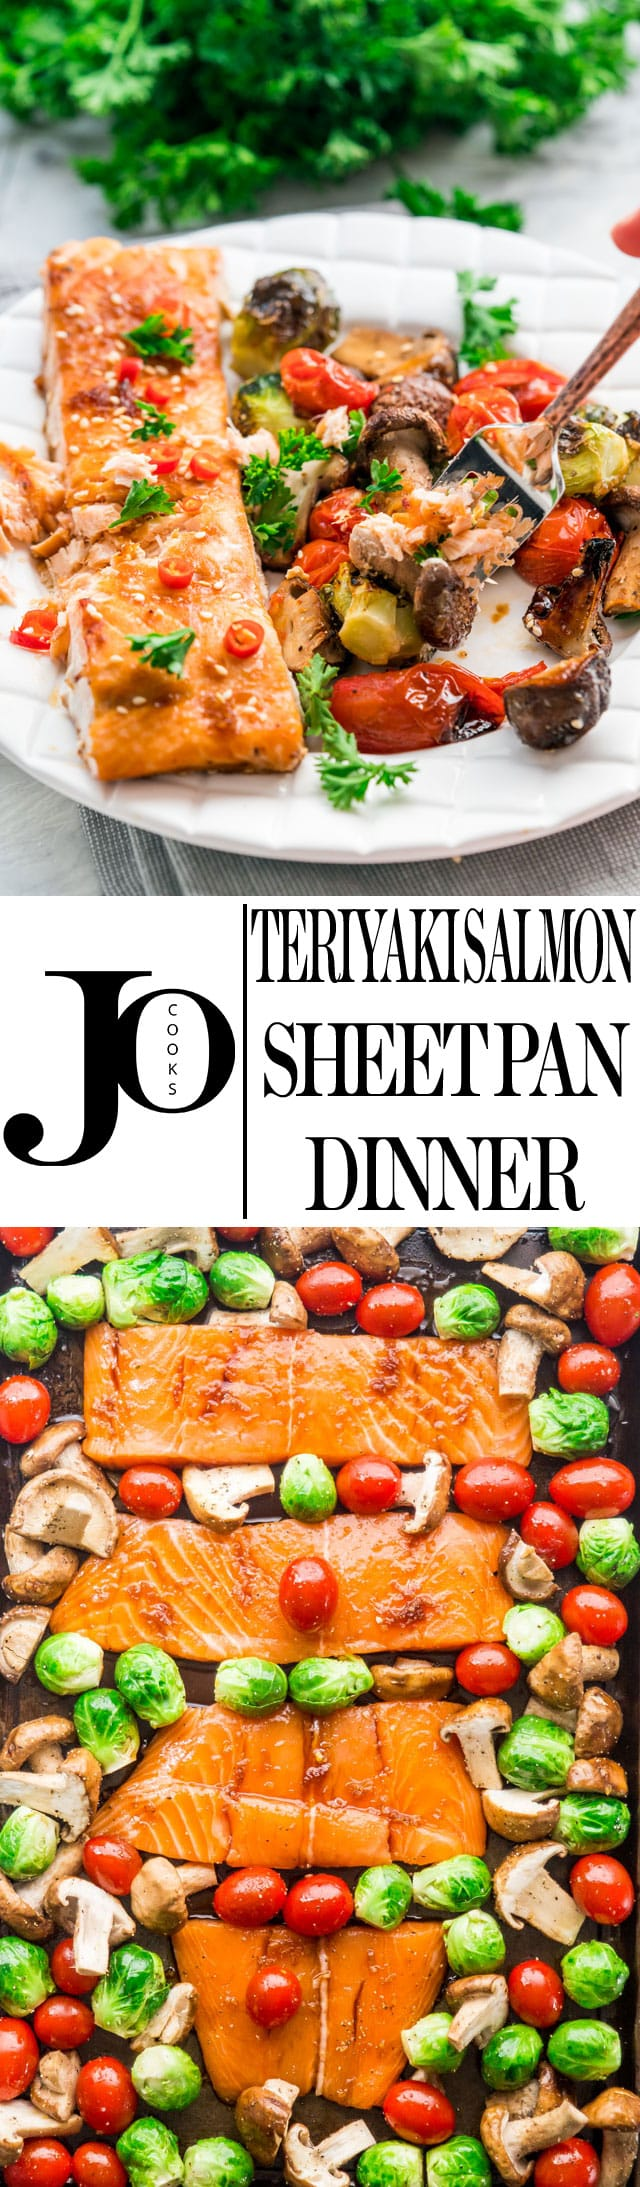 This Teriyaki Salmon Sheet Pan Dinner can be ready from start to finish in 30 minutes! Fast, flavorful and all in one pan! #teriyakisalmon #sheetpandinner